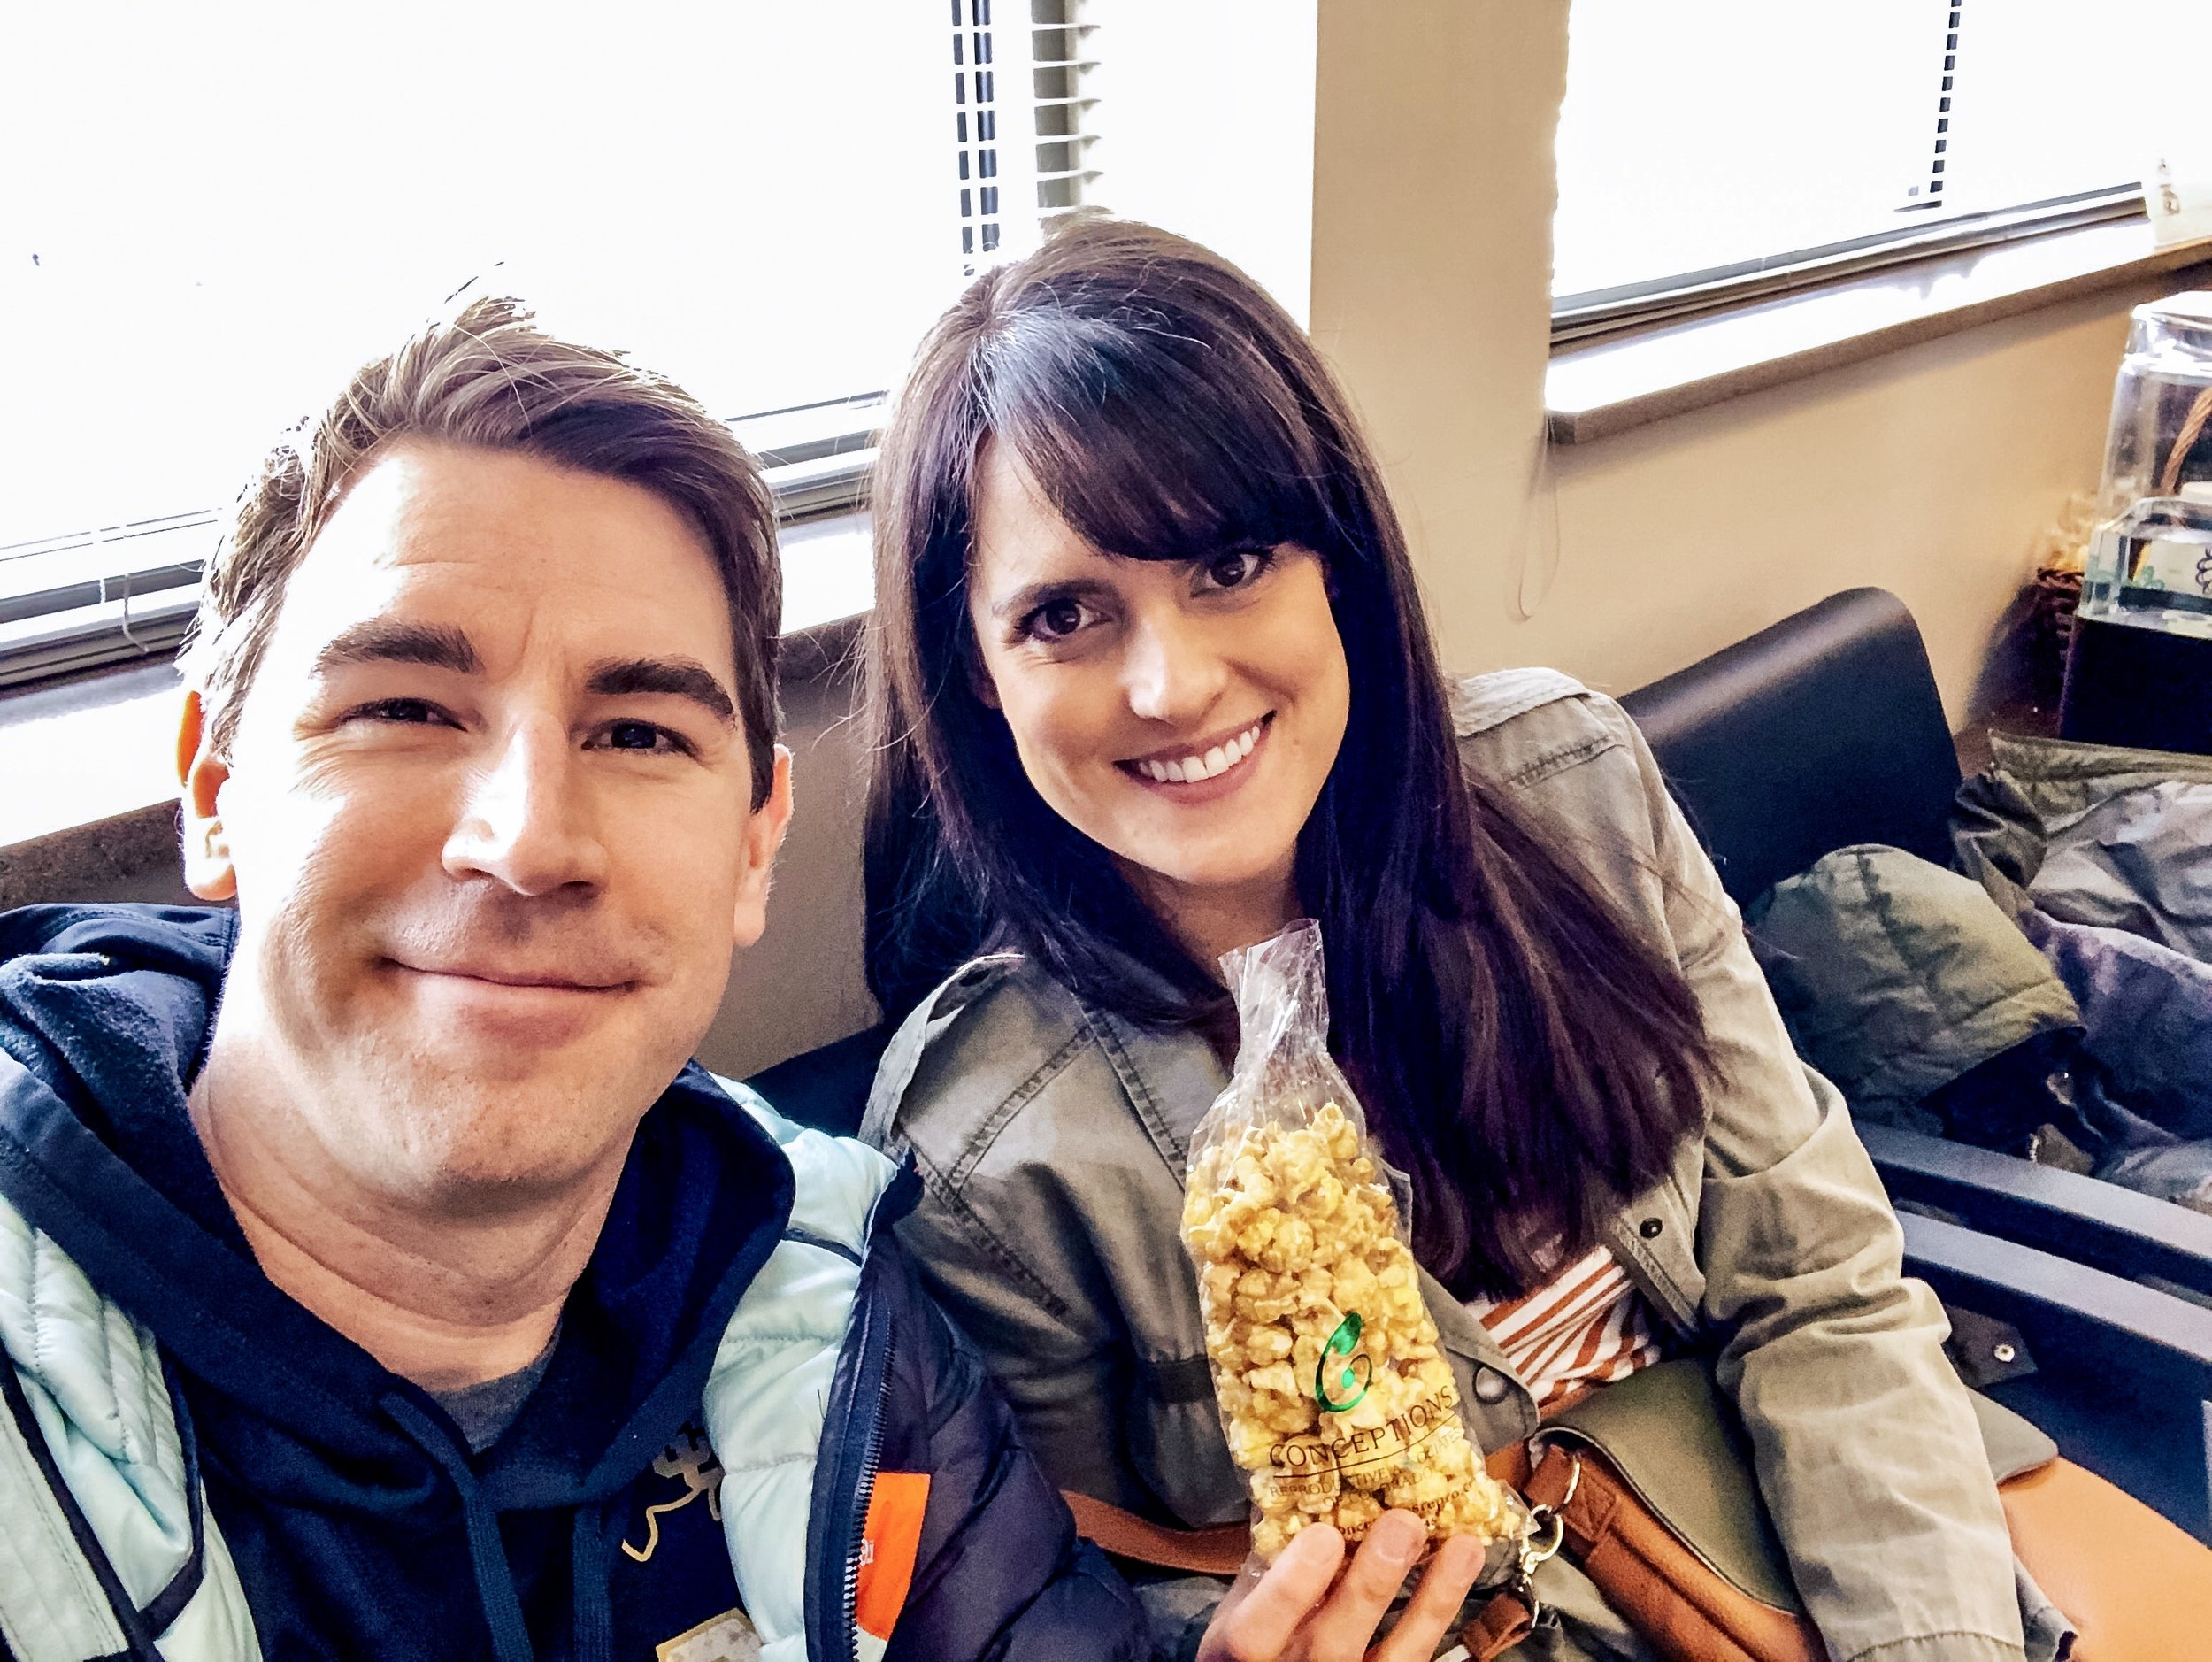 Cory and I sit in the waiting room at their Conceptions and have some of their signature caramel corn in honor of the burnt popcorn debacle that almost resulted in us cancelling this appointment.